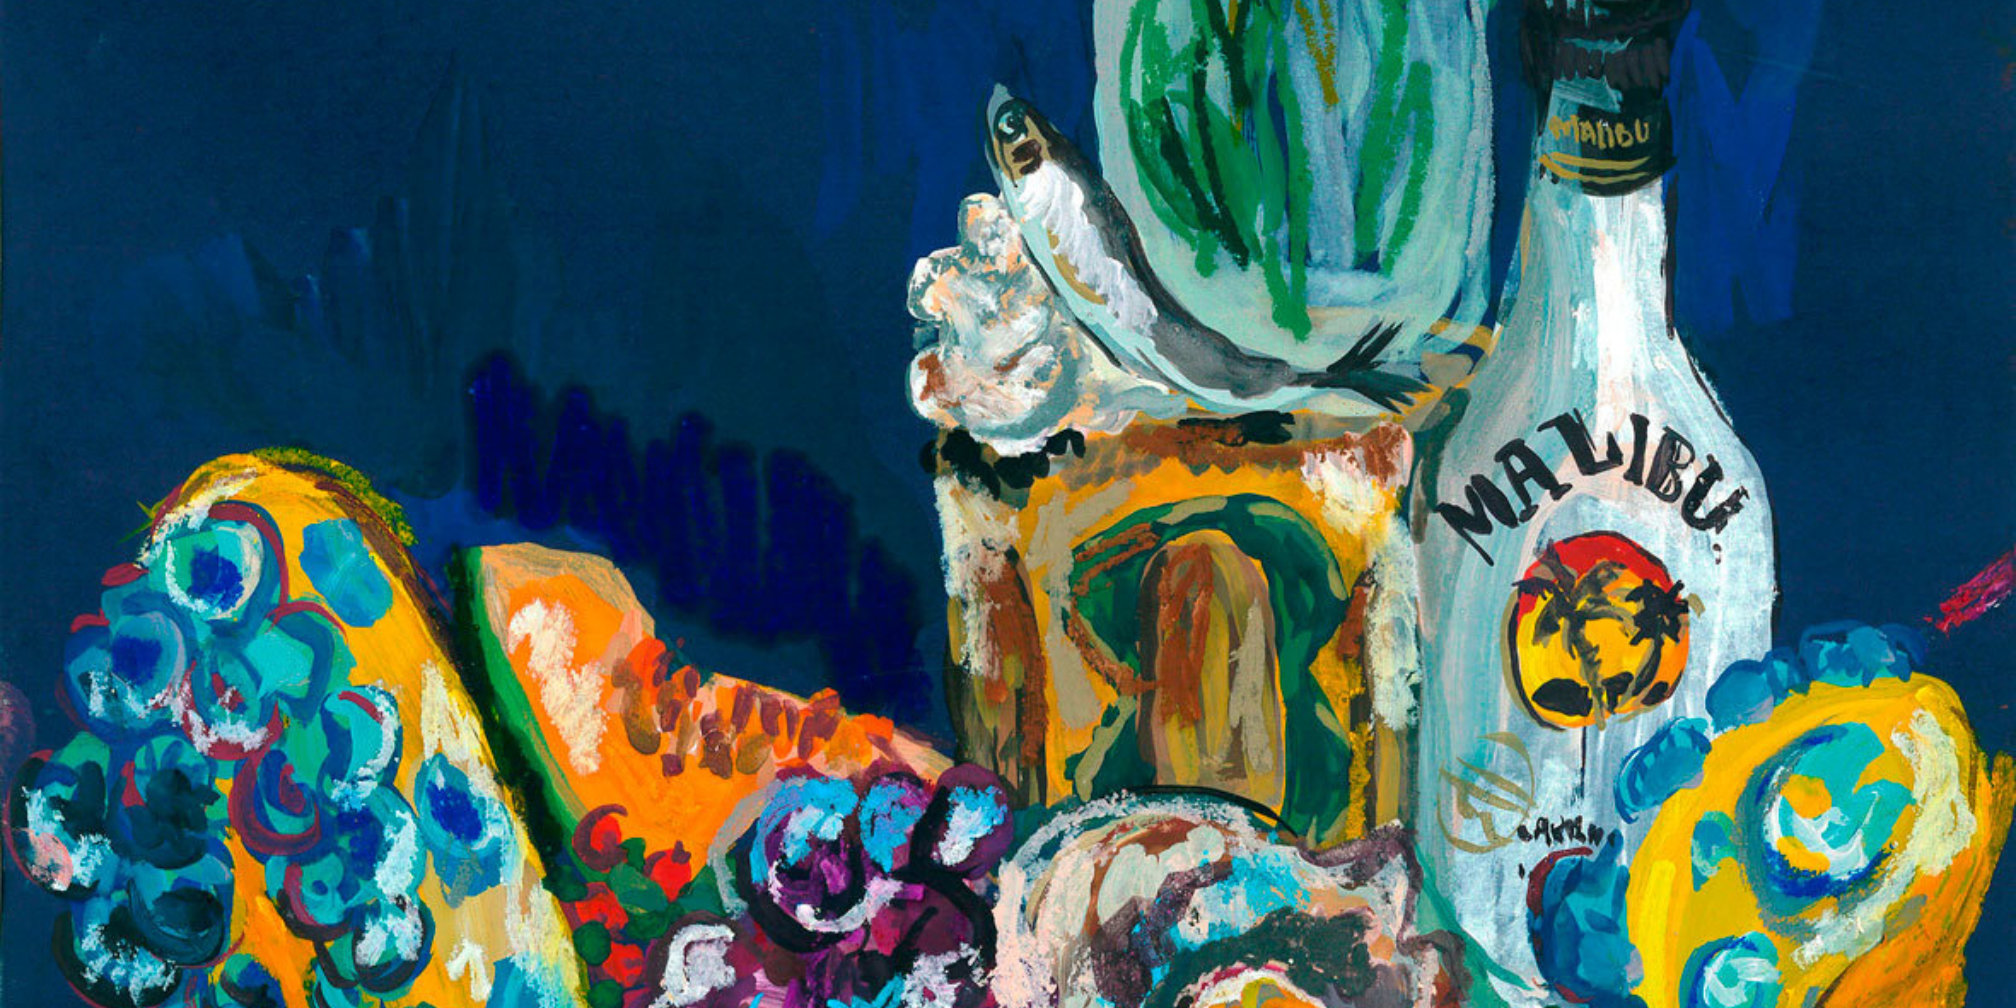 Lindsey Mendick, Still Life at Plaza, 2018 (detail). Gouache and oil pastels on paper.